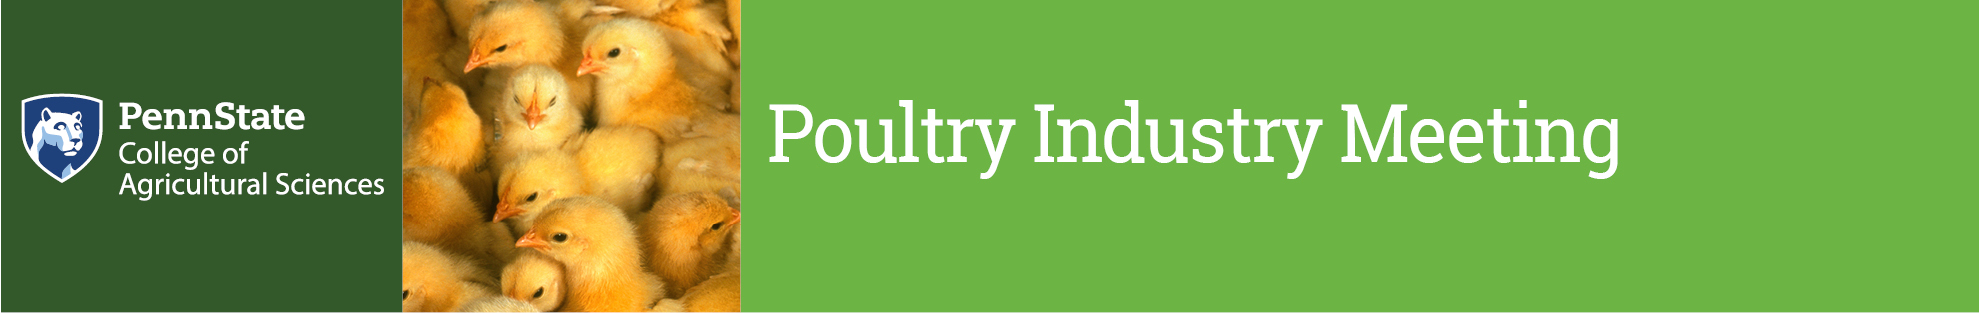 Penn State and Poultry Industry Meeting